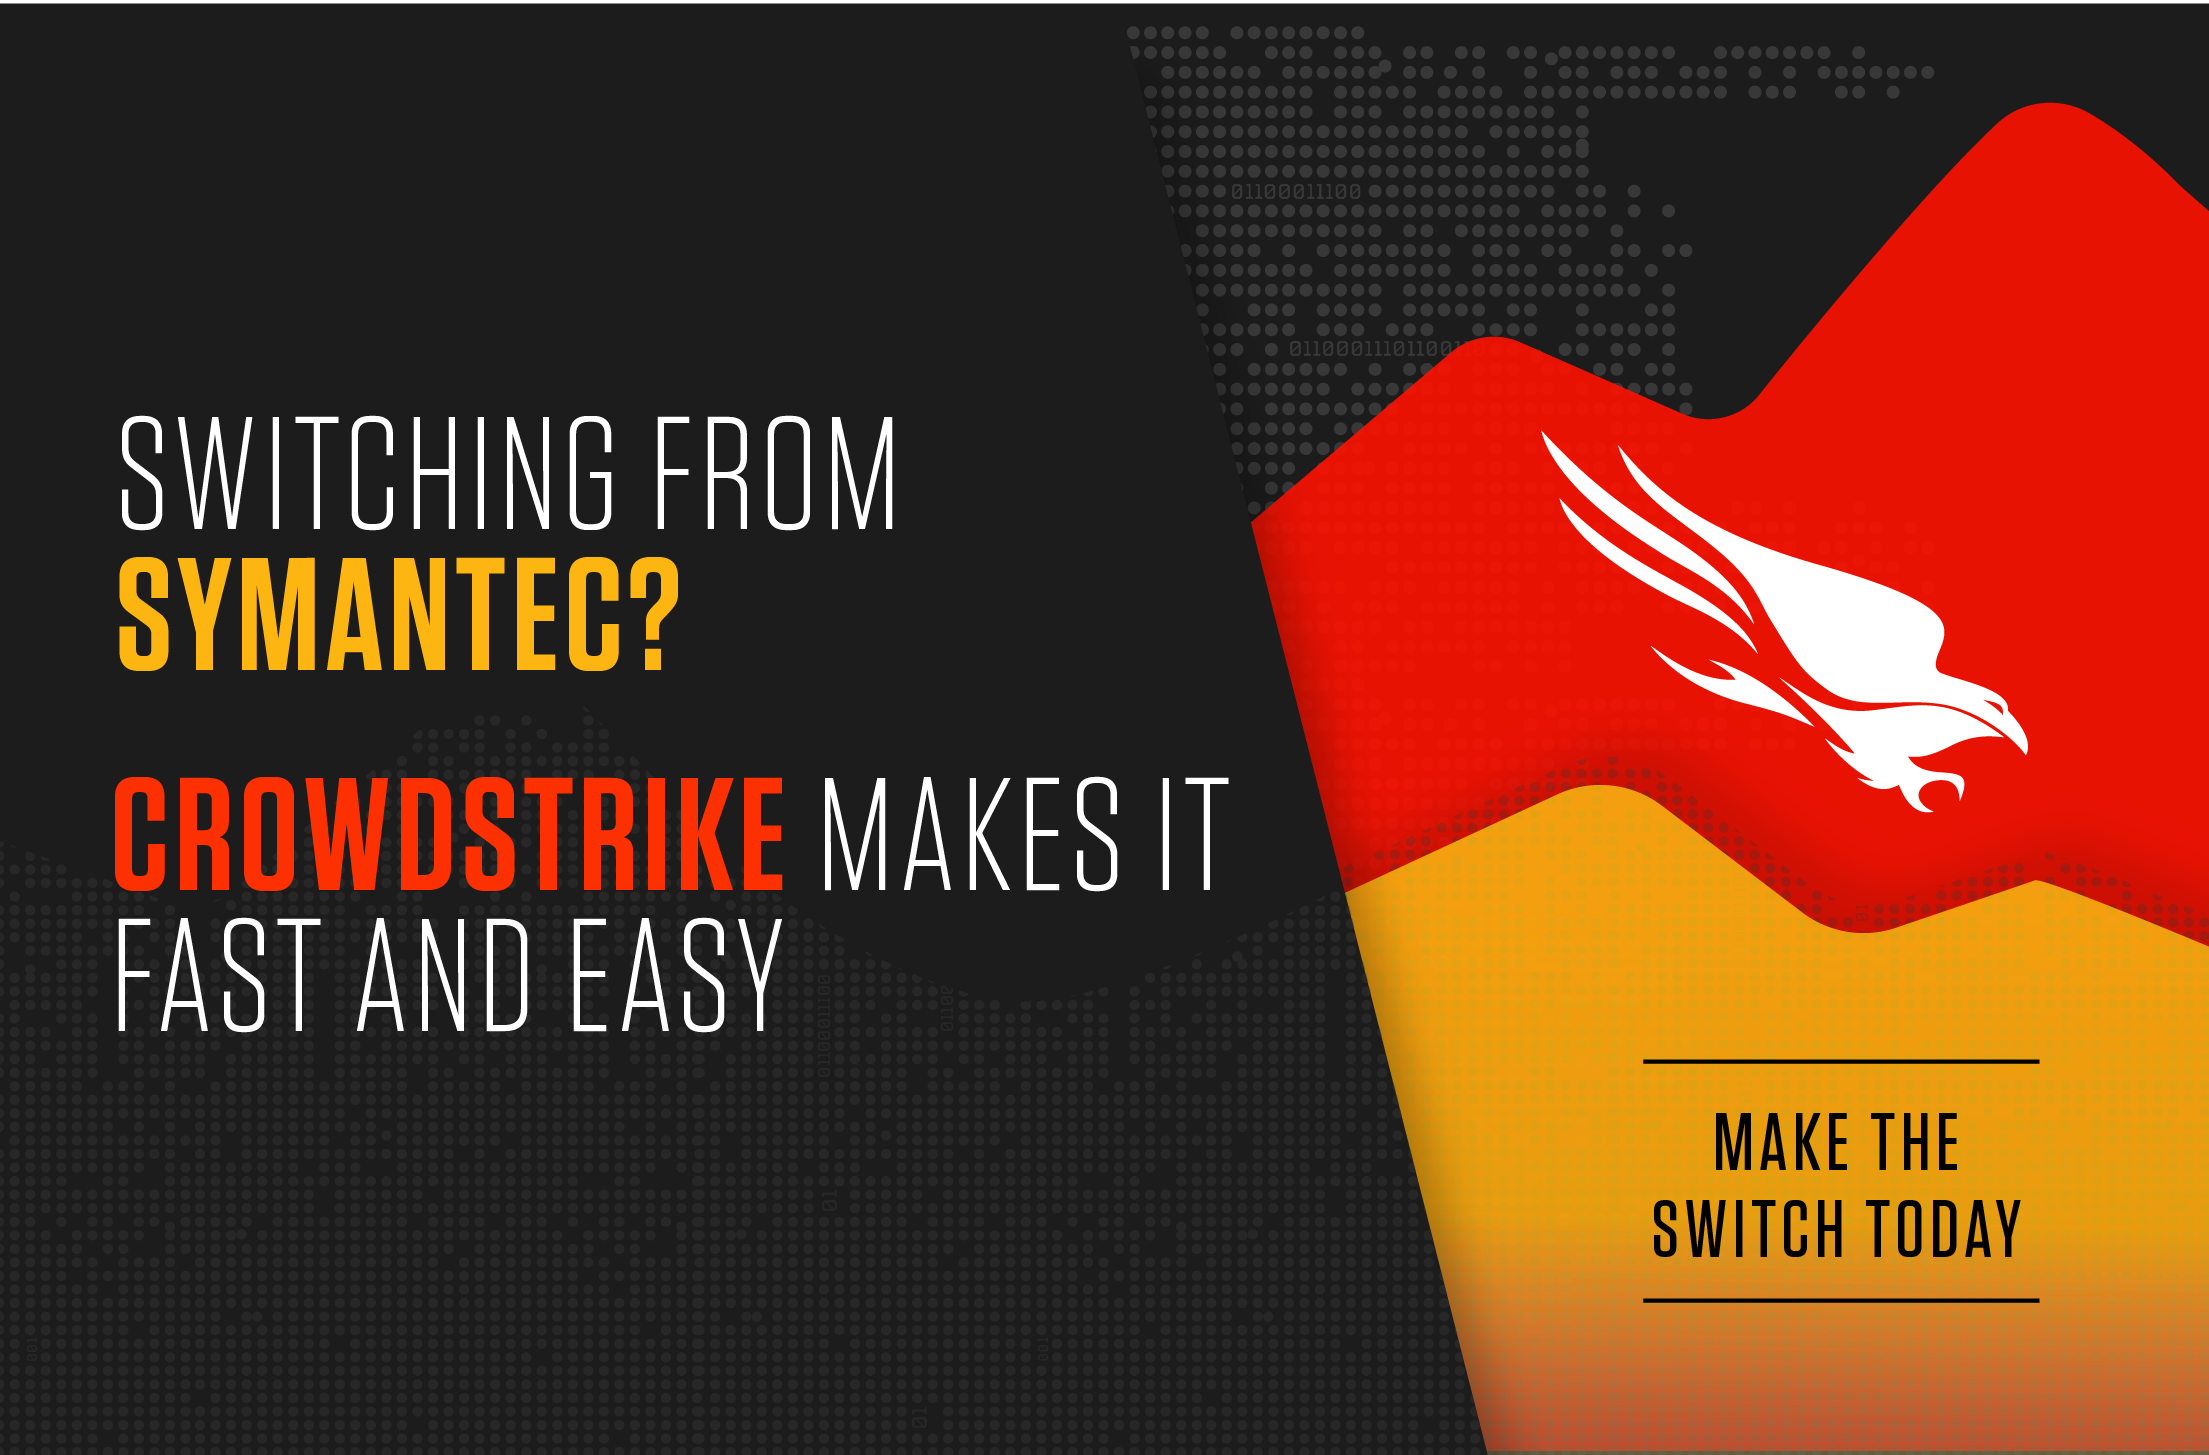 CrowdStrike Announces Special Offer For Symantec Enterprise Customers